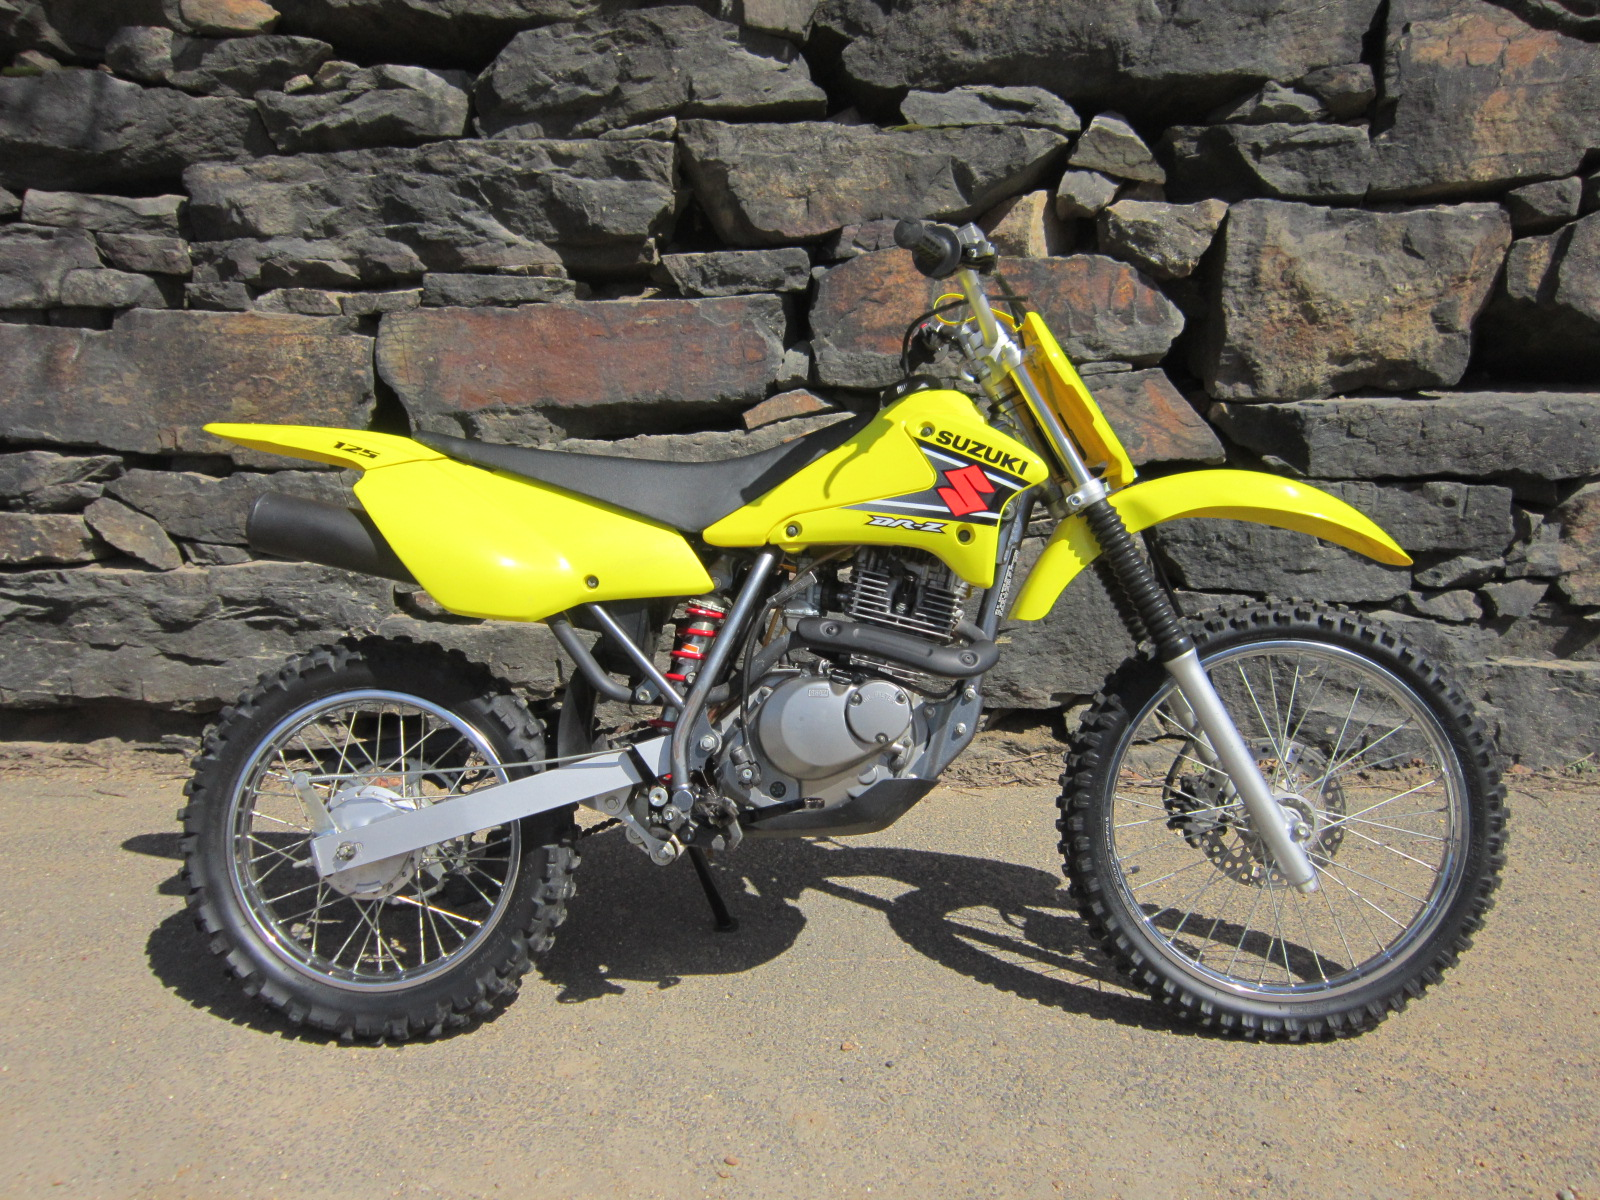 2003 suzuki dr z 125 l pics specs and information. Black Bedroom Furniture Sets. Home Design Ideas